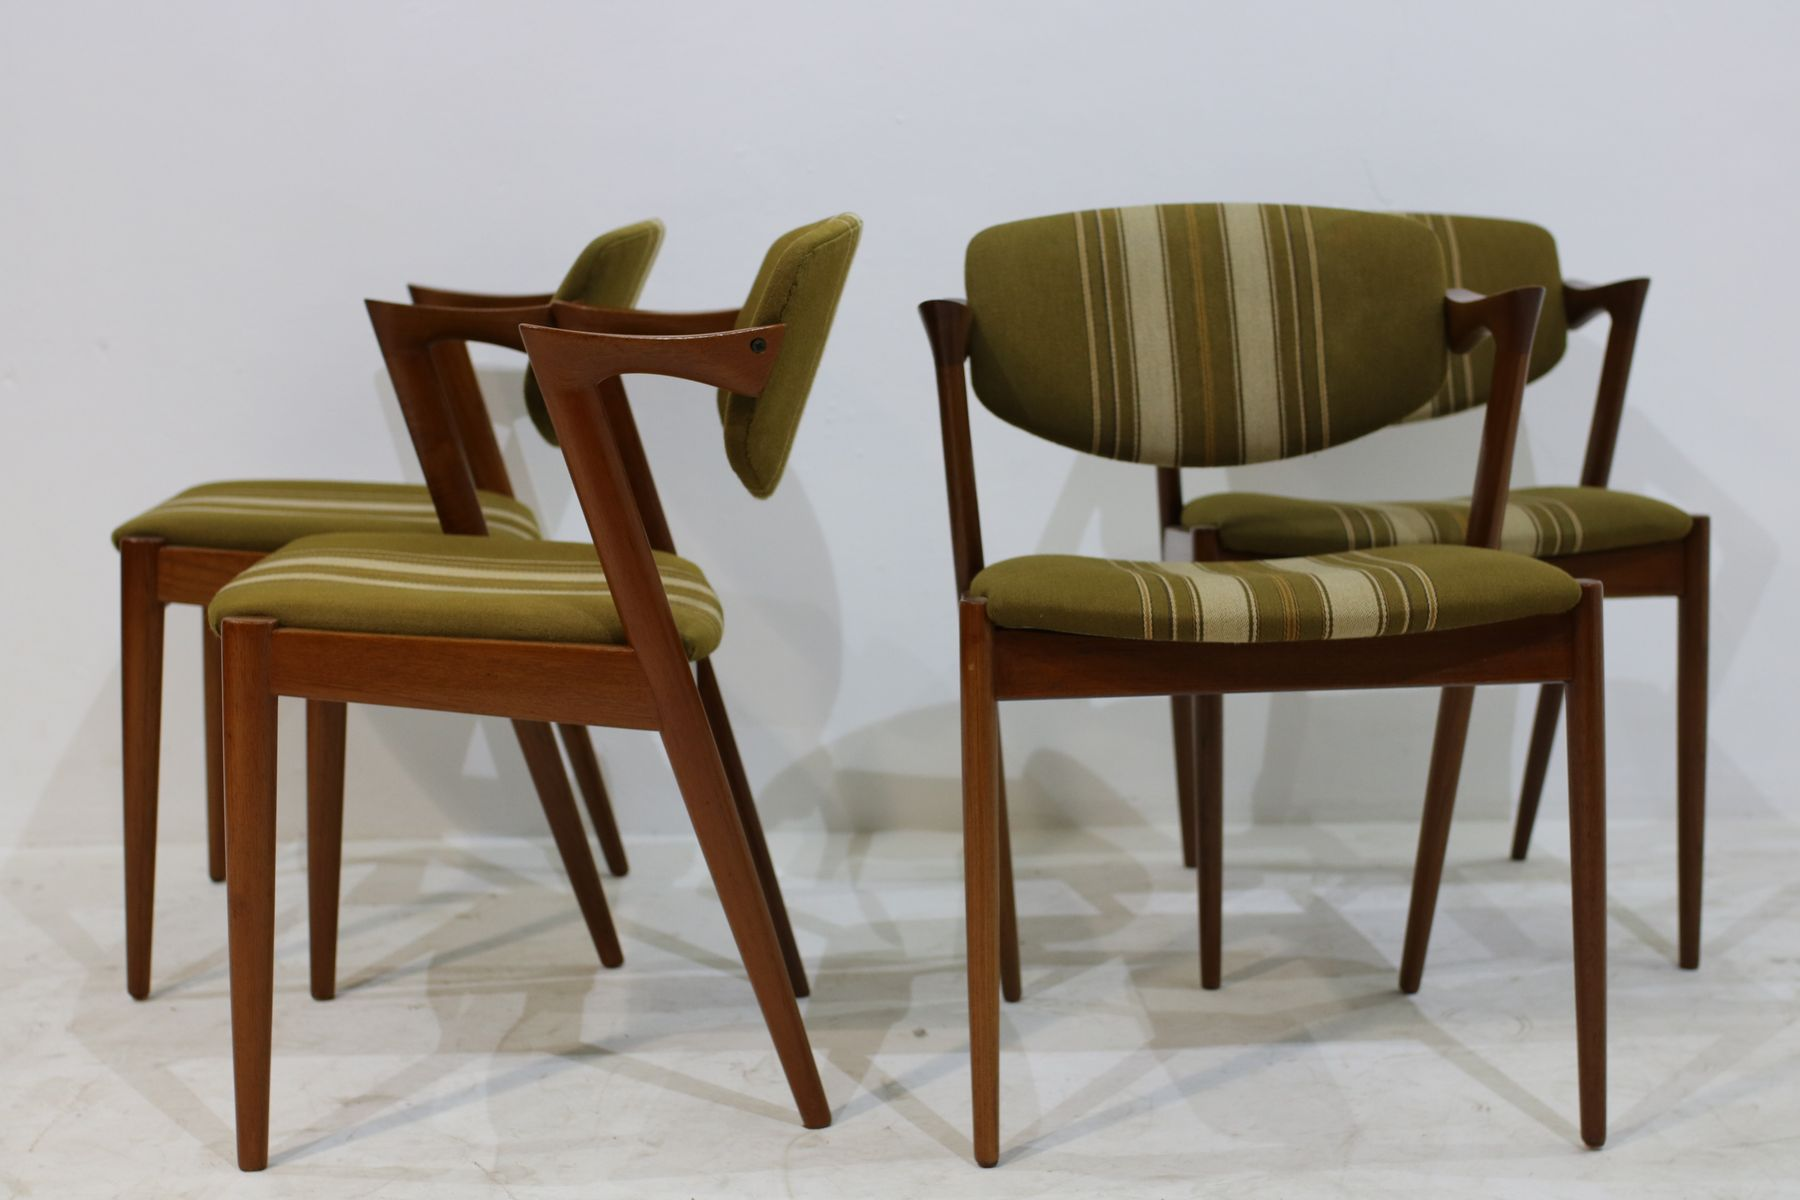 Vintage Model 42 Chairs By Kai Kristiansen Set Of 4 For Sale At Pamono